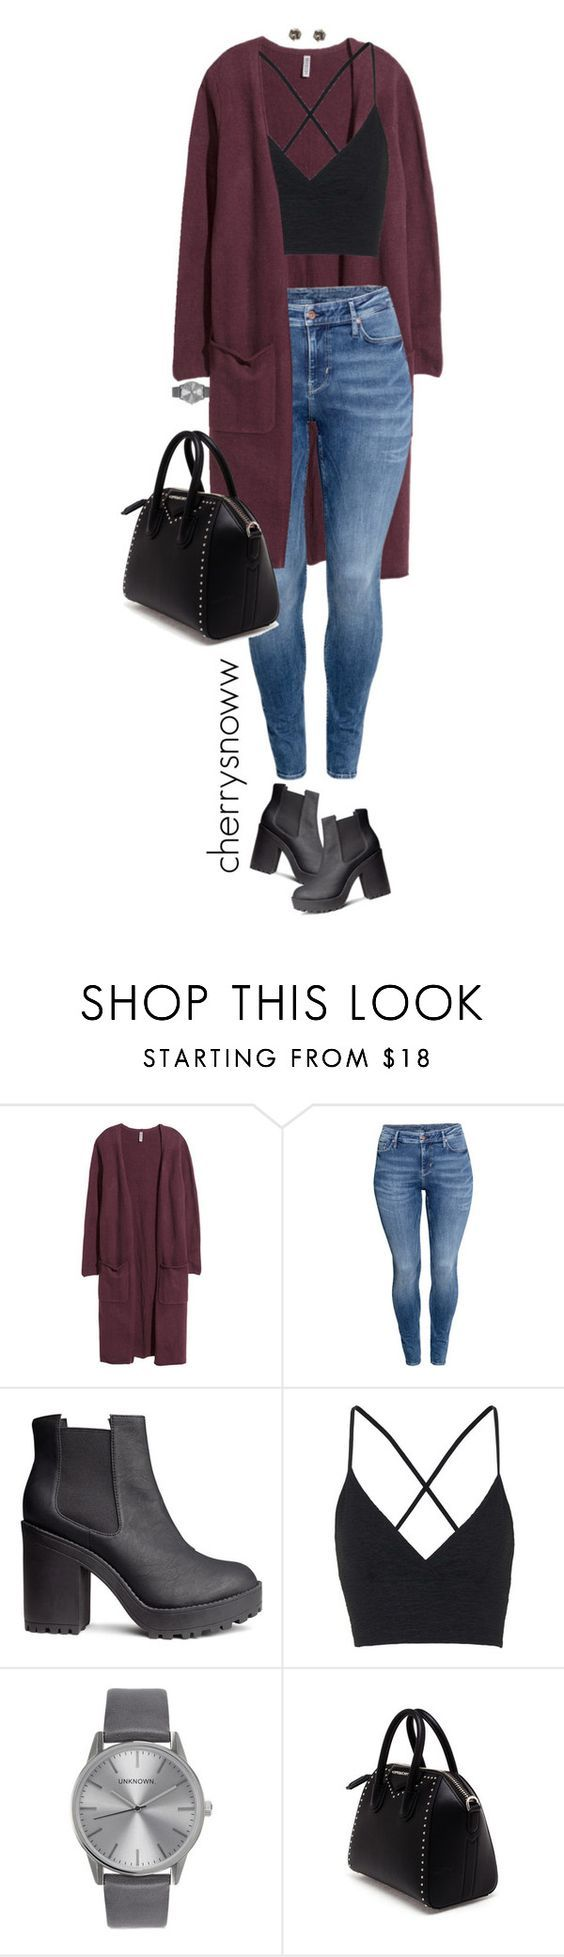 """""""Casual grunge fall outfit"""" by cherrysnoww ❤ liked on Polyvore featuring H&M, Topshop, Givenchy and Snö Of Sweden:"""